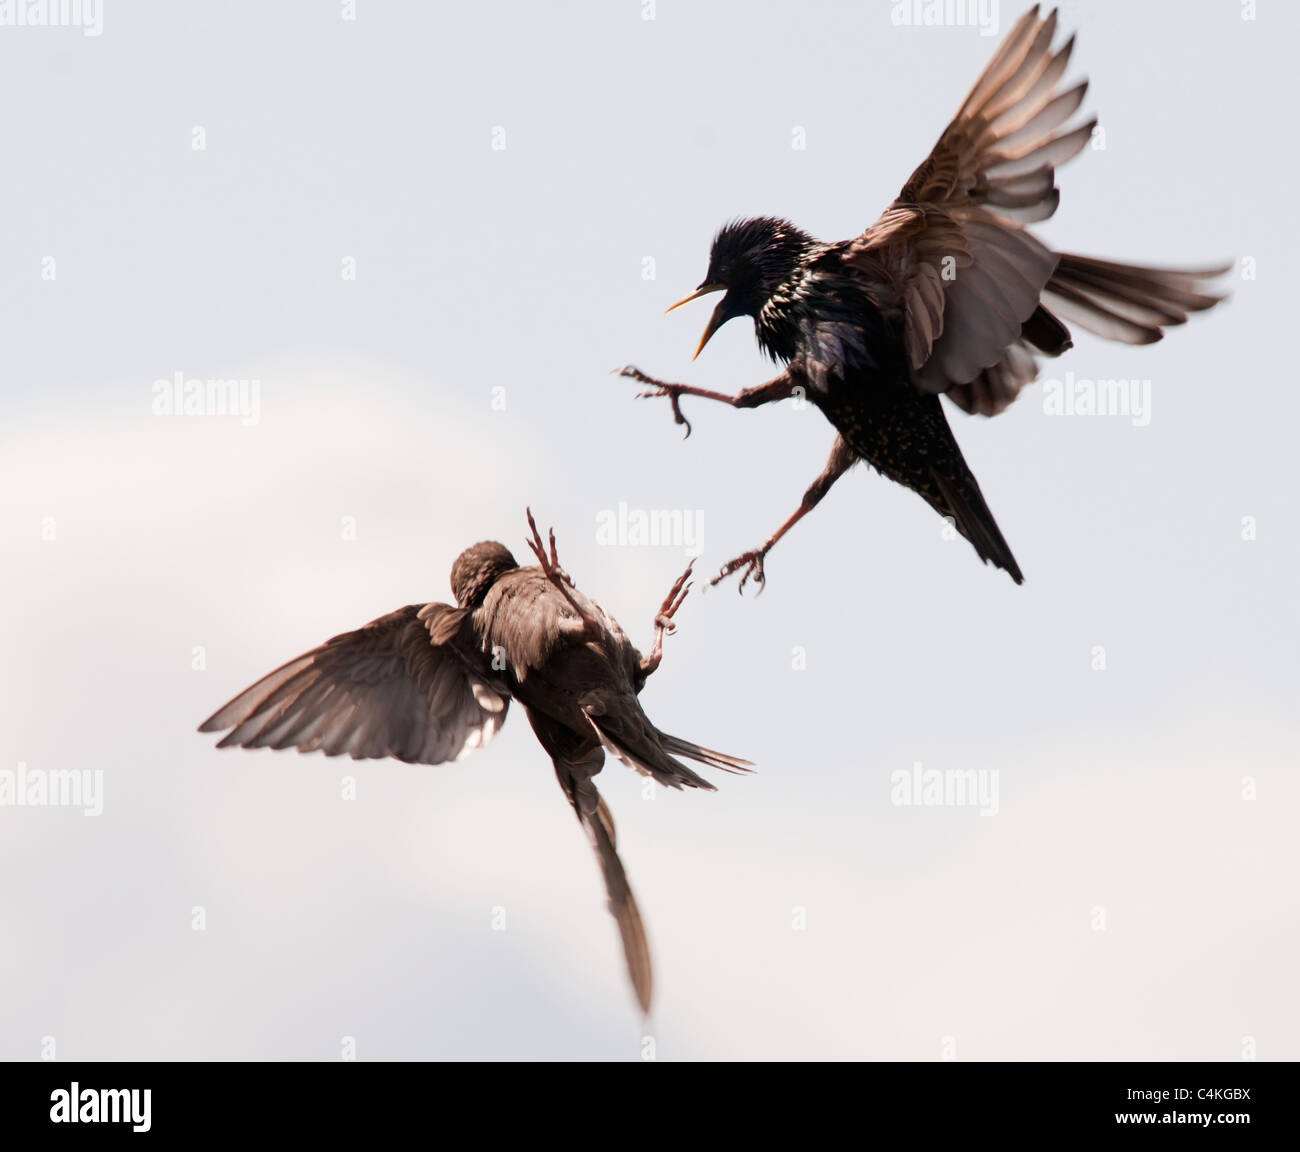 Adult and Juvenile Starling quarrelling in flight - Stock Image